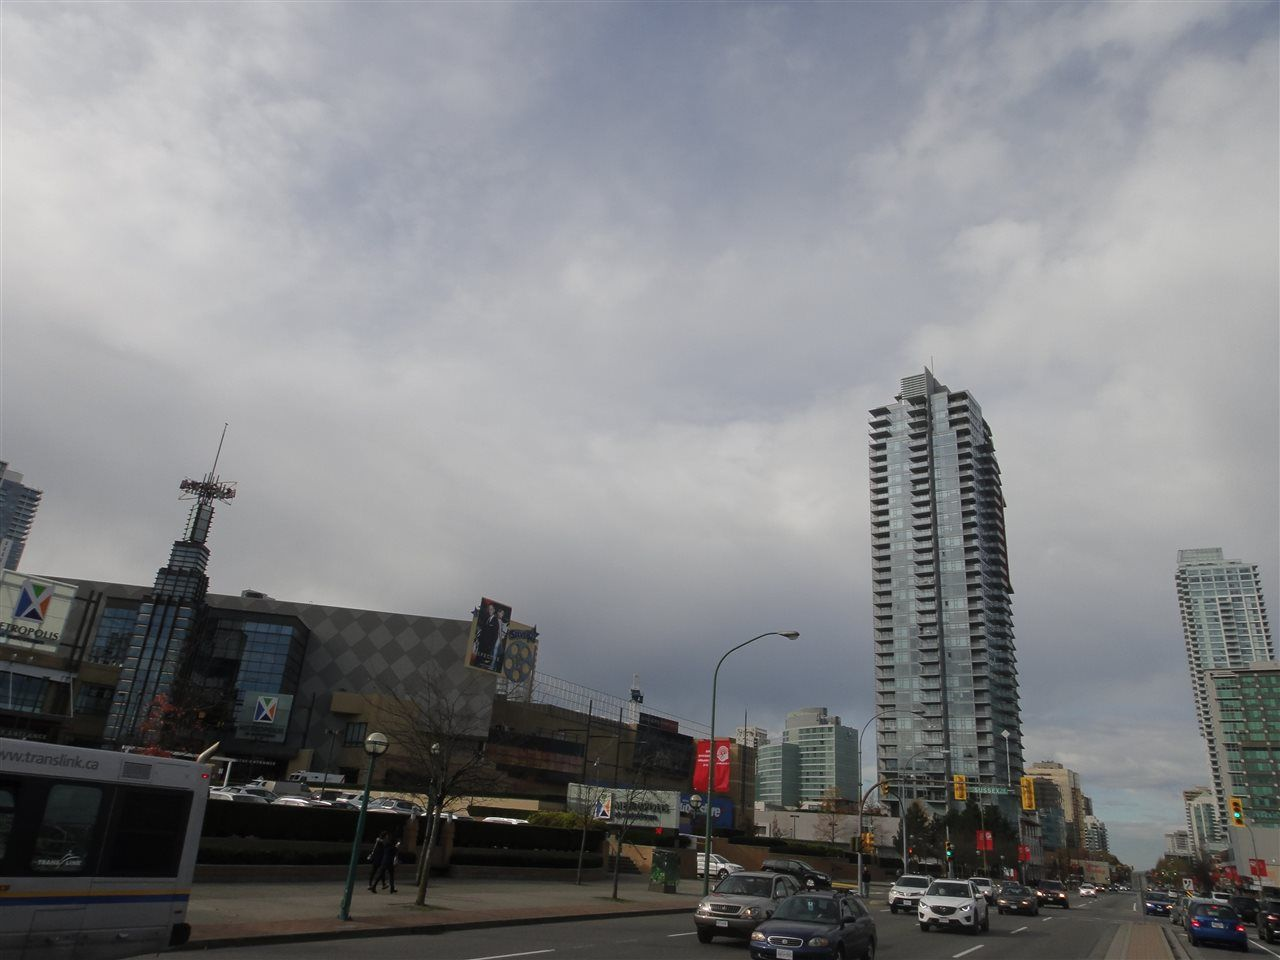 Main Photo: 2805 4688 KINGSWAY in Burnaby: Metrotown Condo for sale (Burnaby South)  : MLS®# R2010141